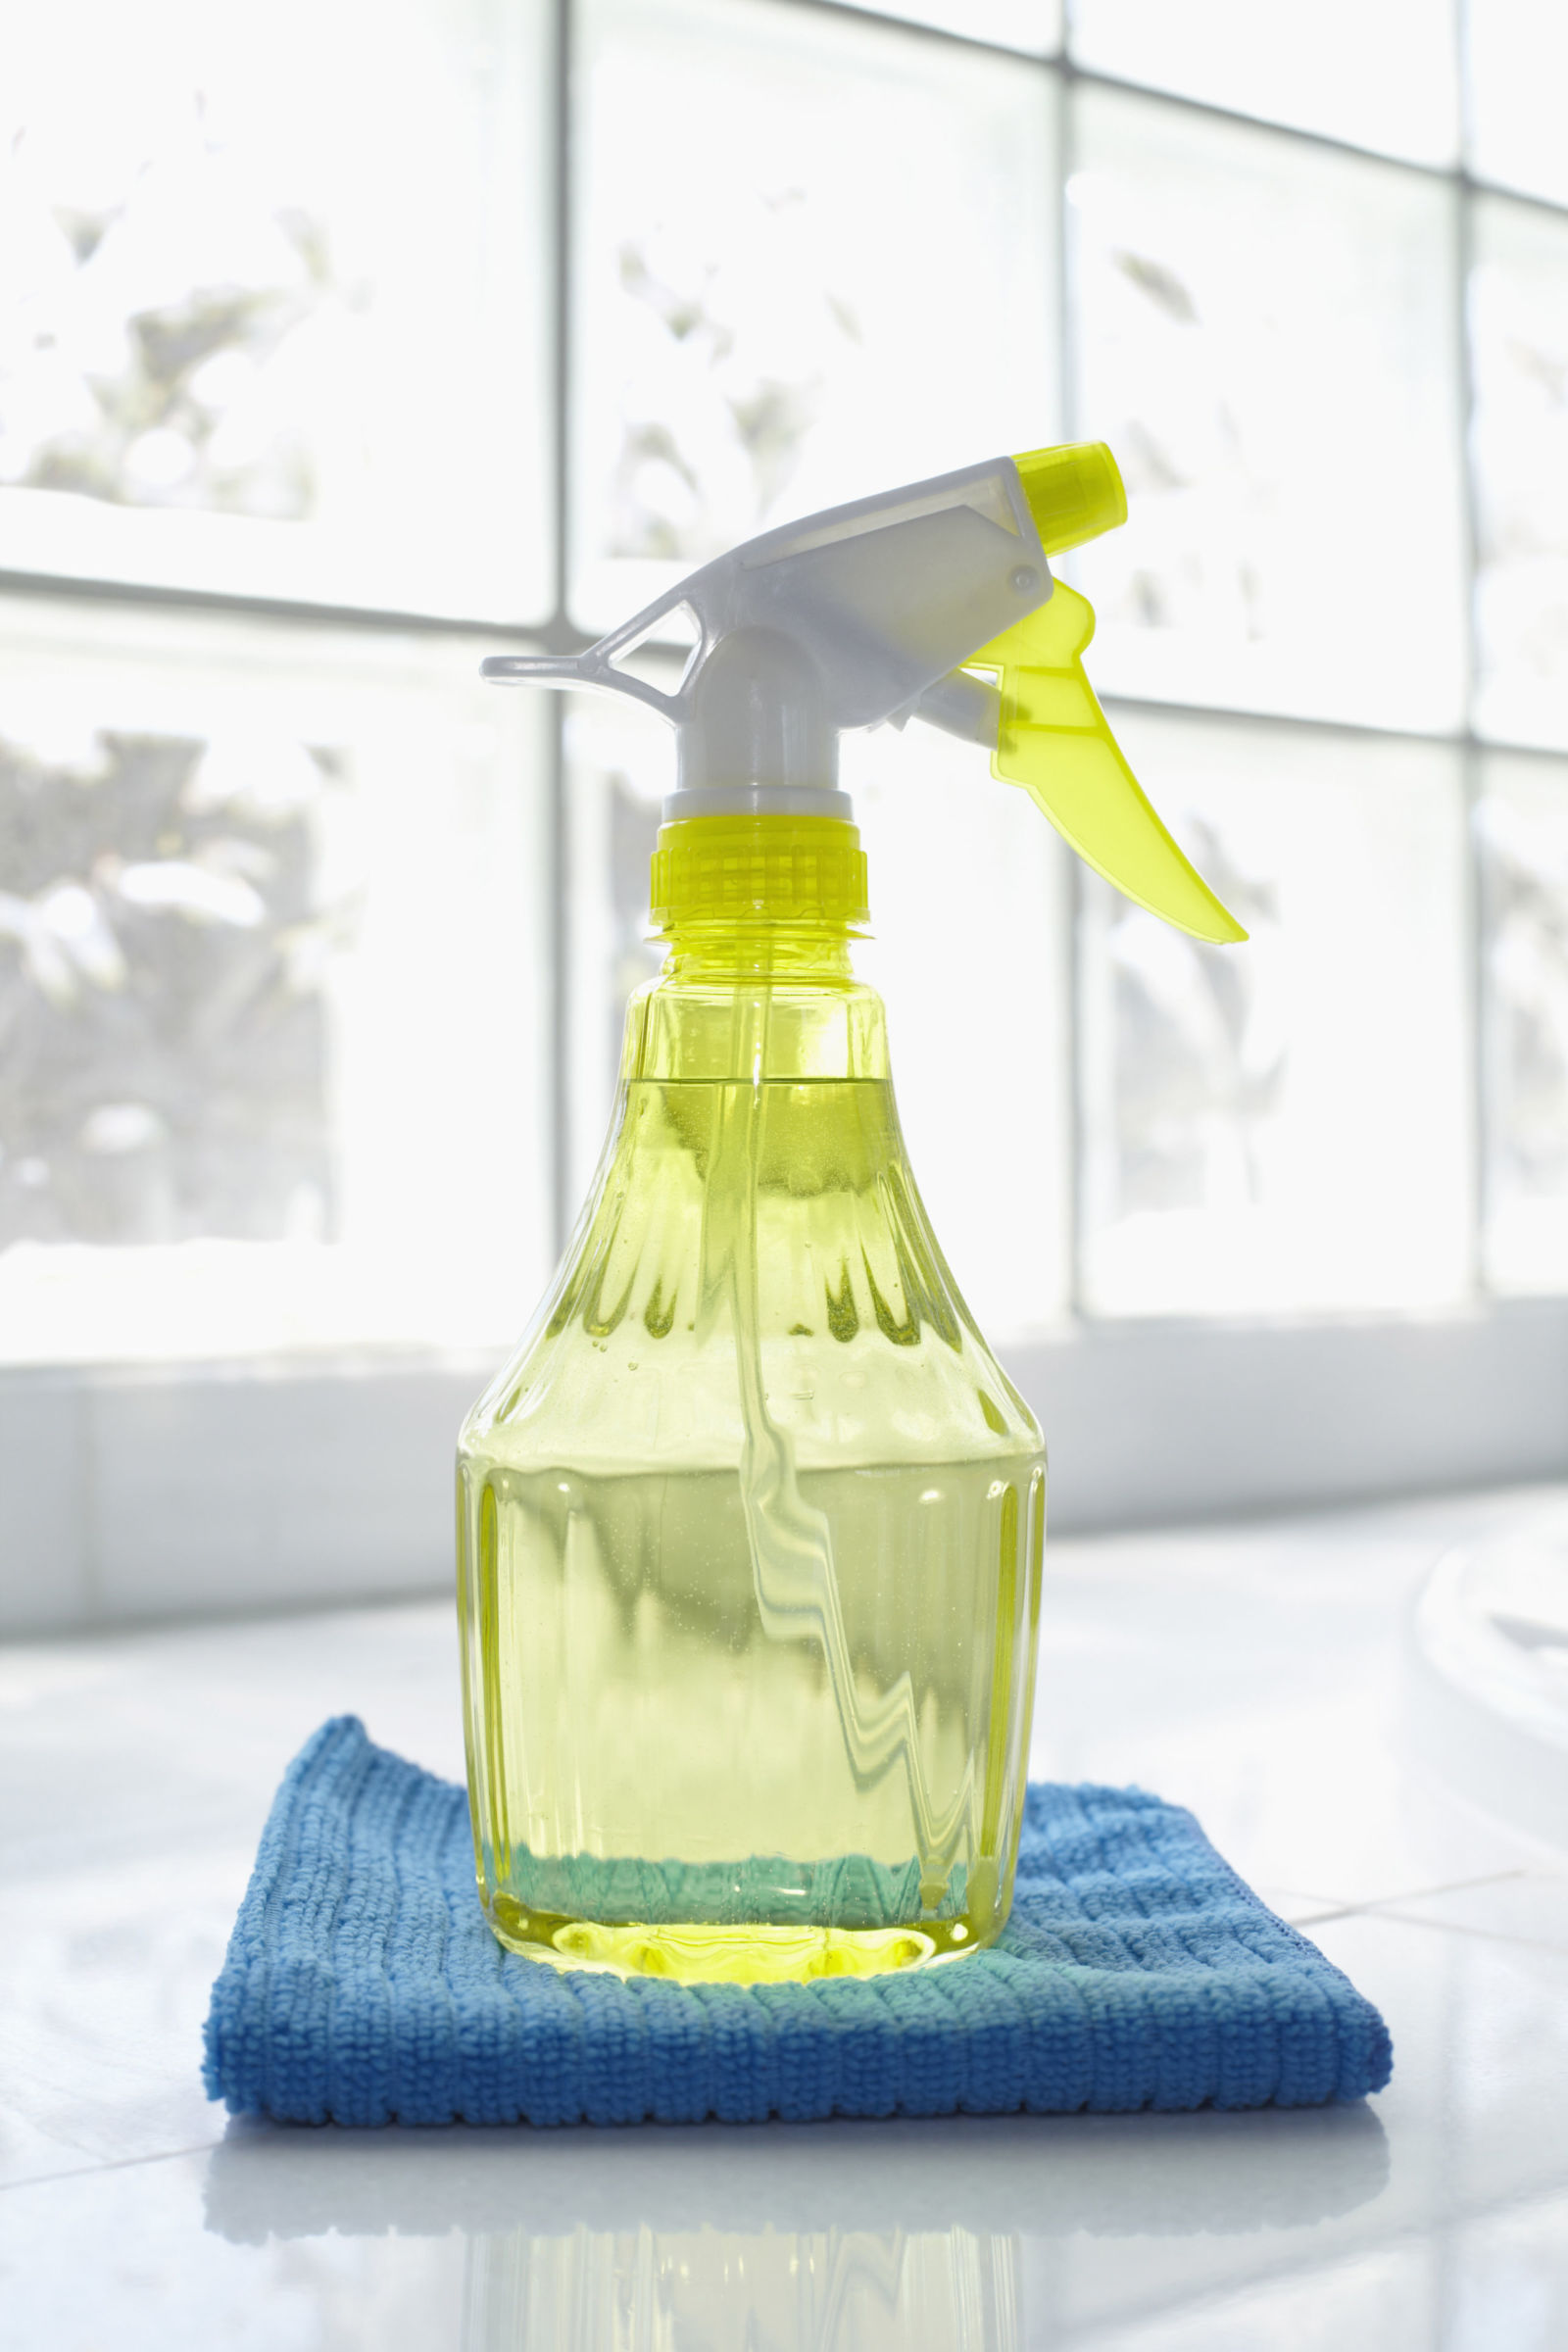 Best thing to clean windows with - Best Thing To Clean Windows With 18